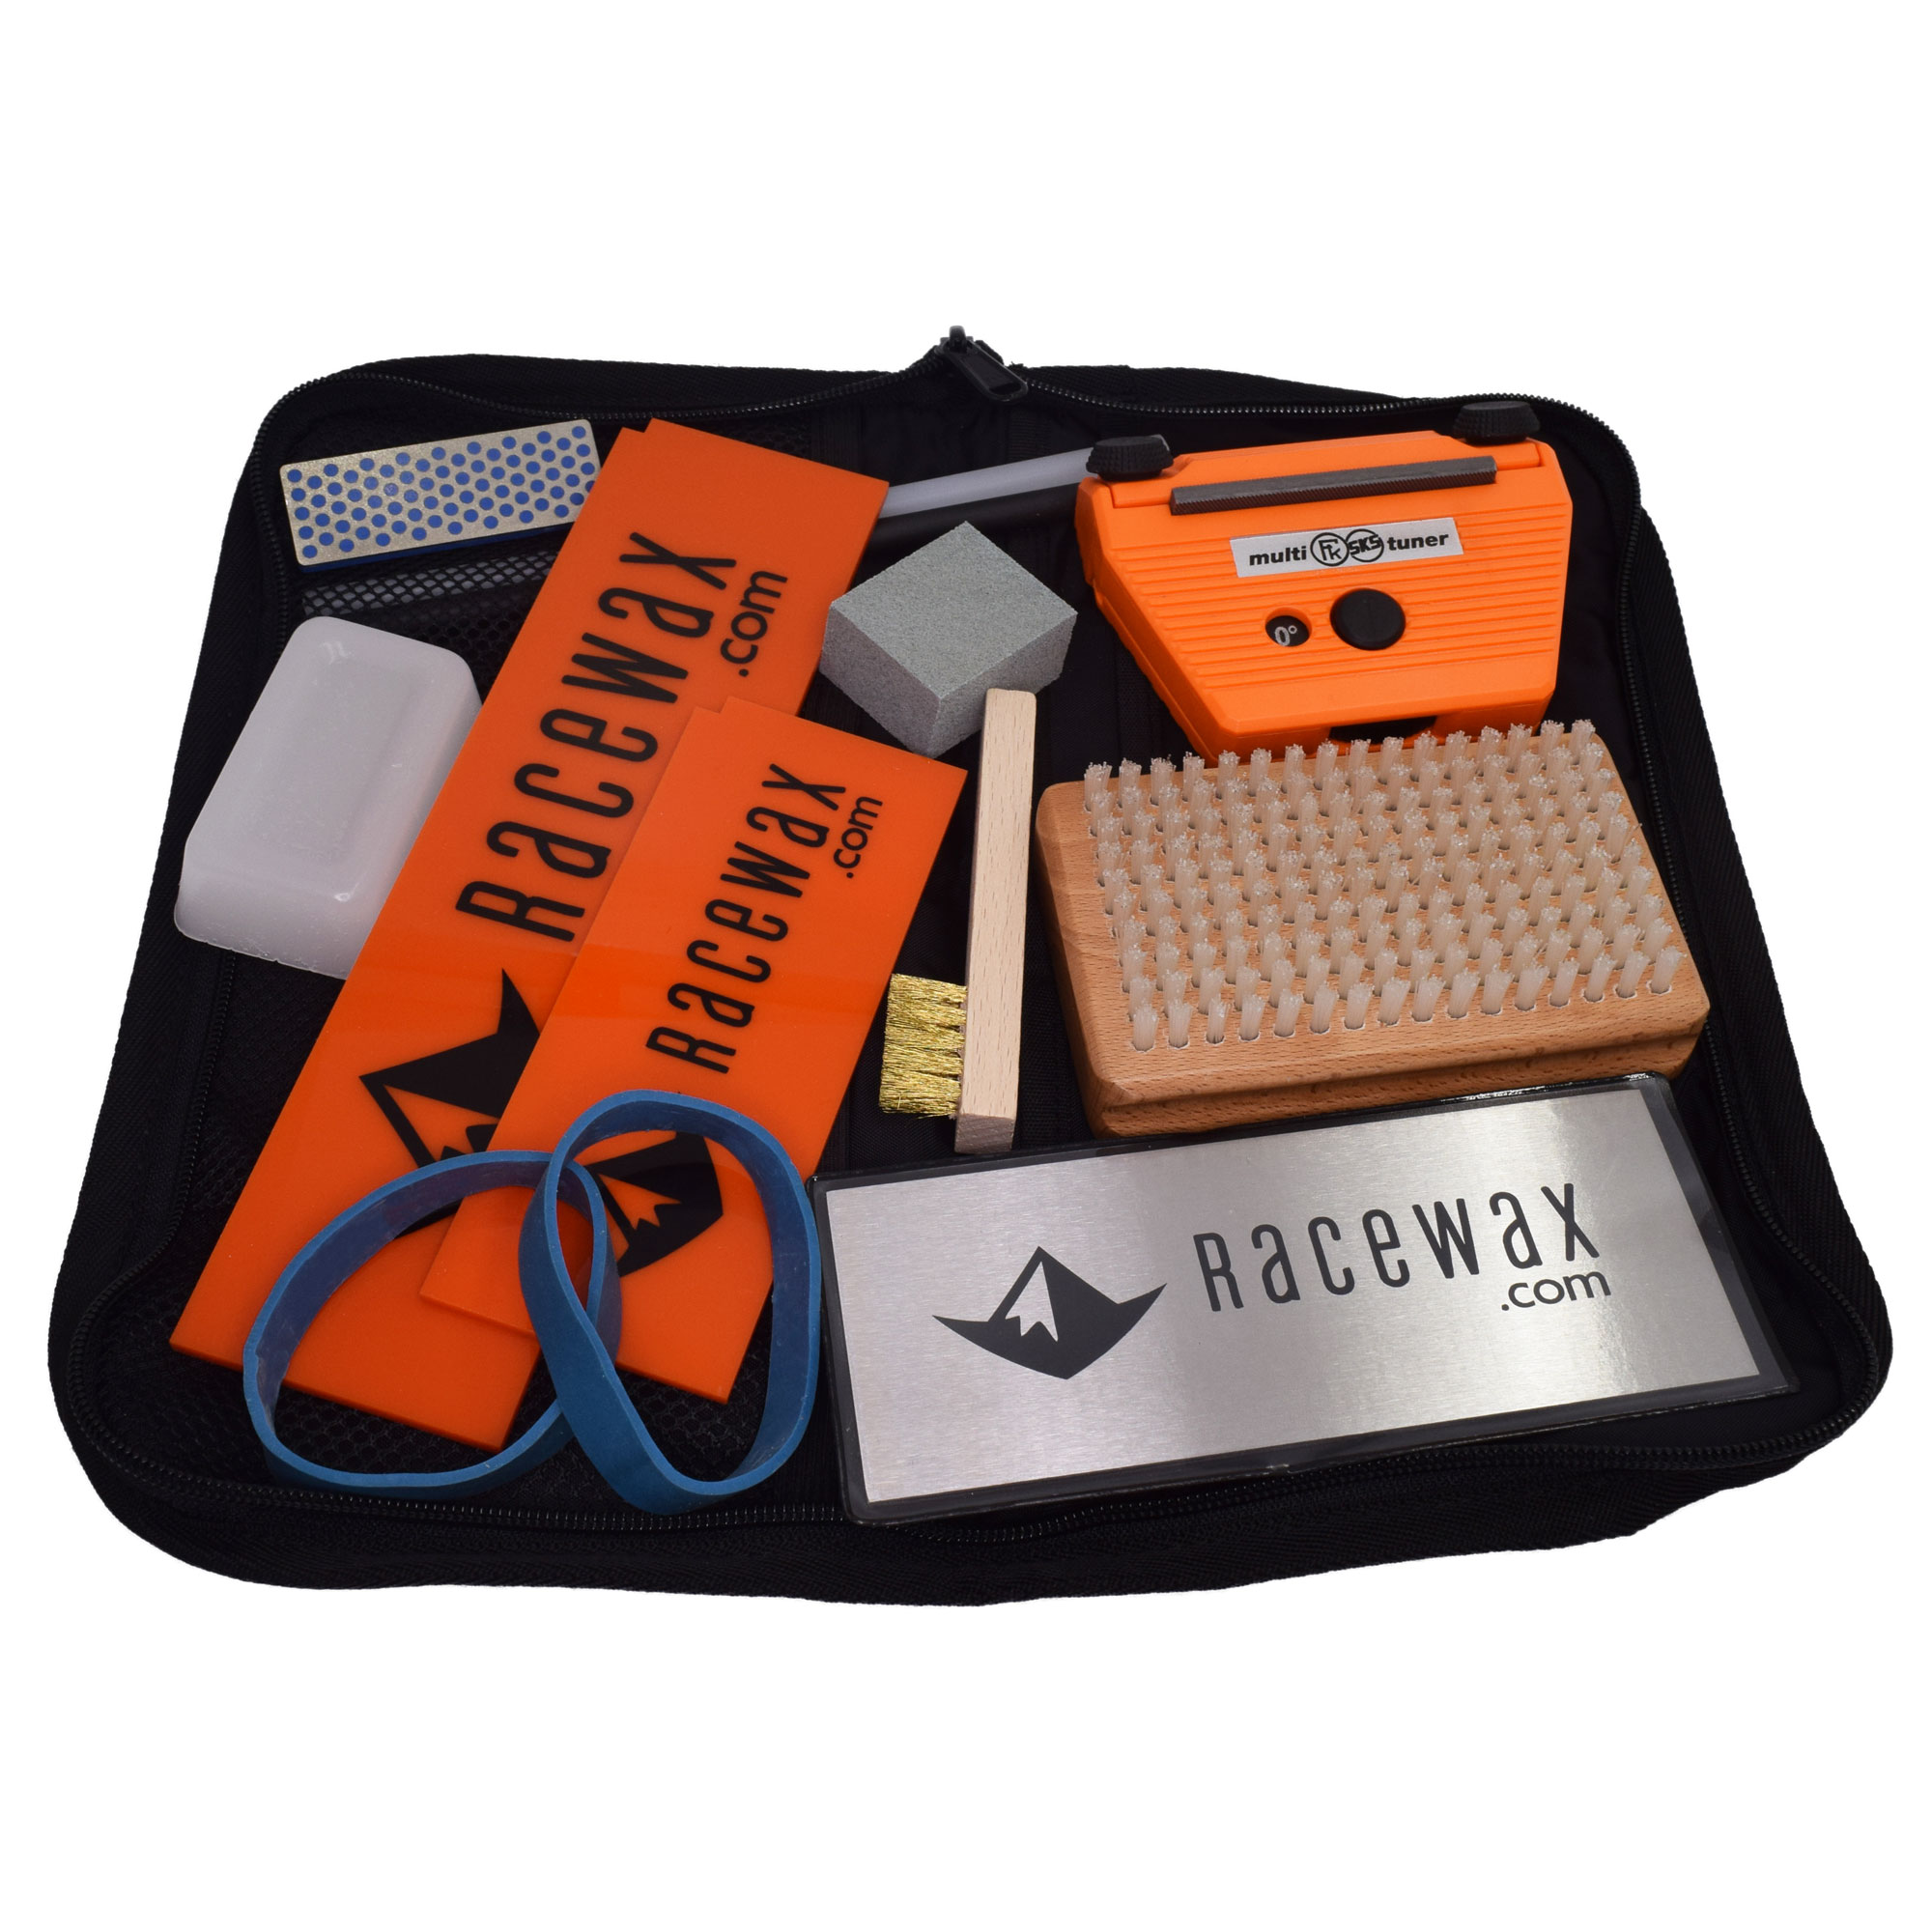 RaceWax Deluxe Ski Snowboard Tuning Kit by RaceWax